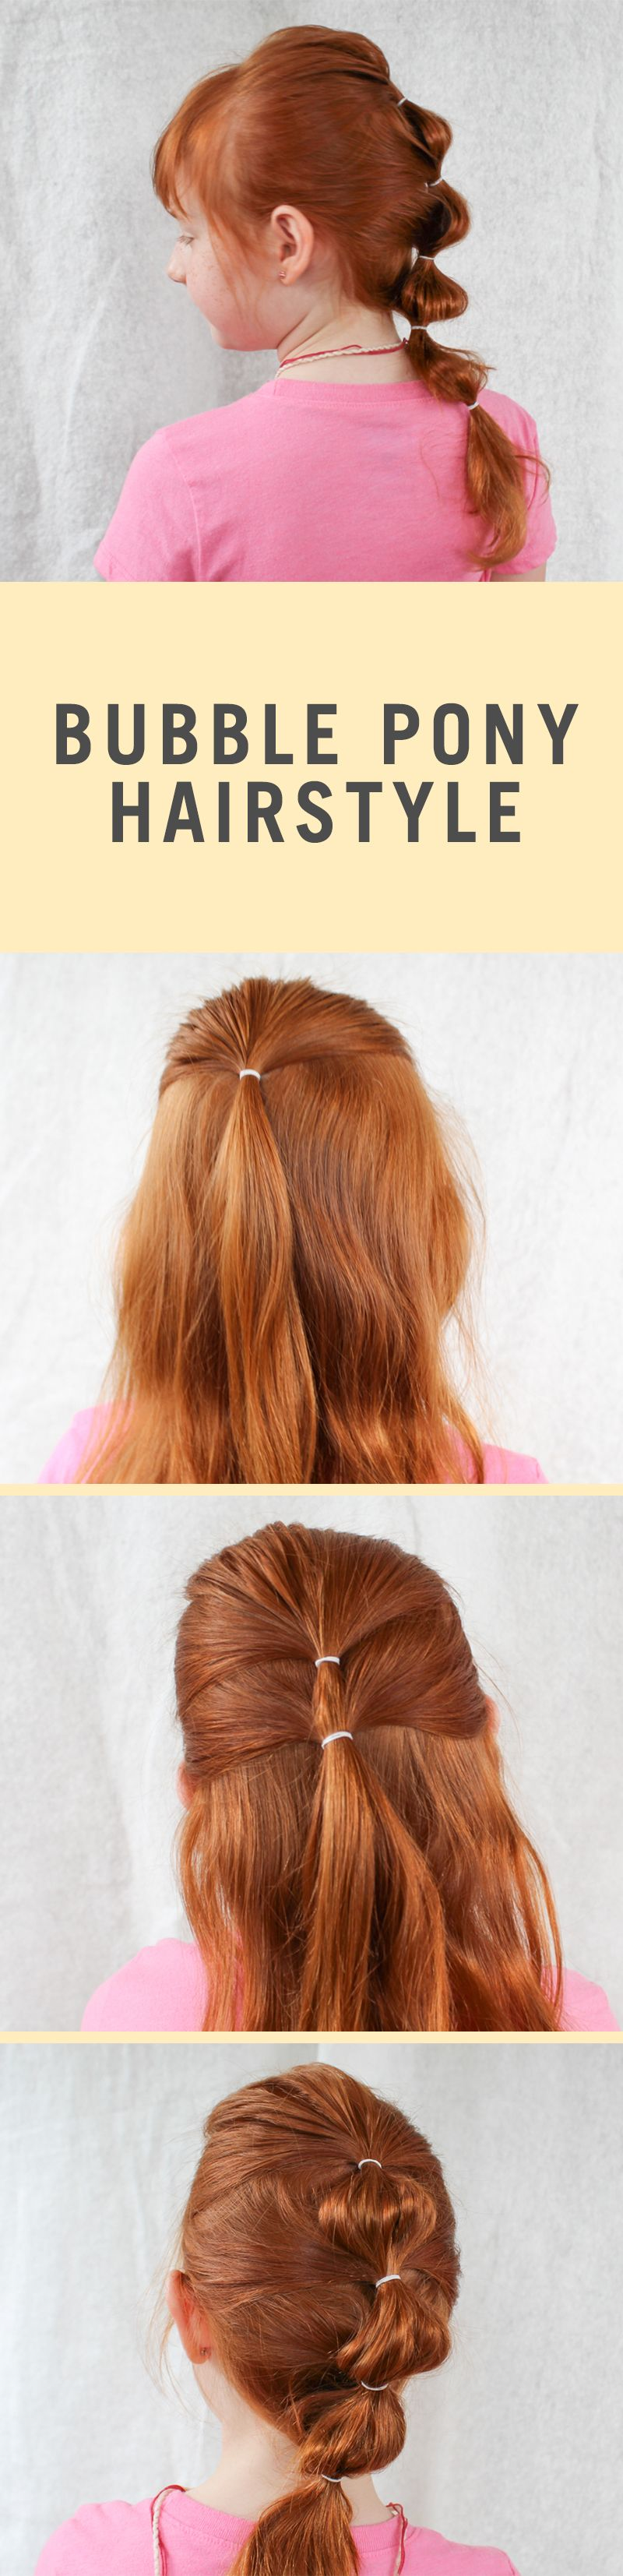 5 Minute Back to School Hairstyles Pinterest